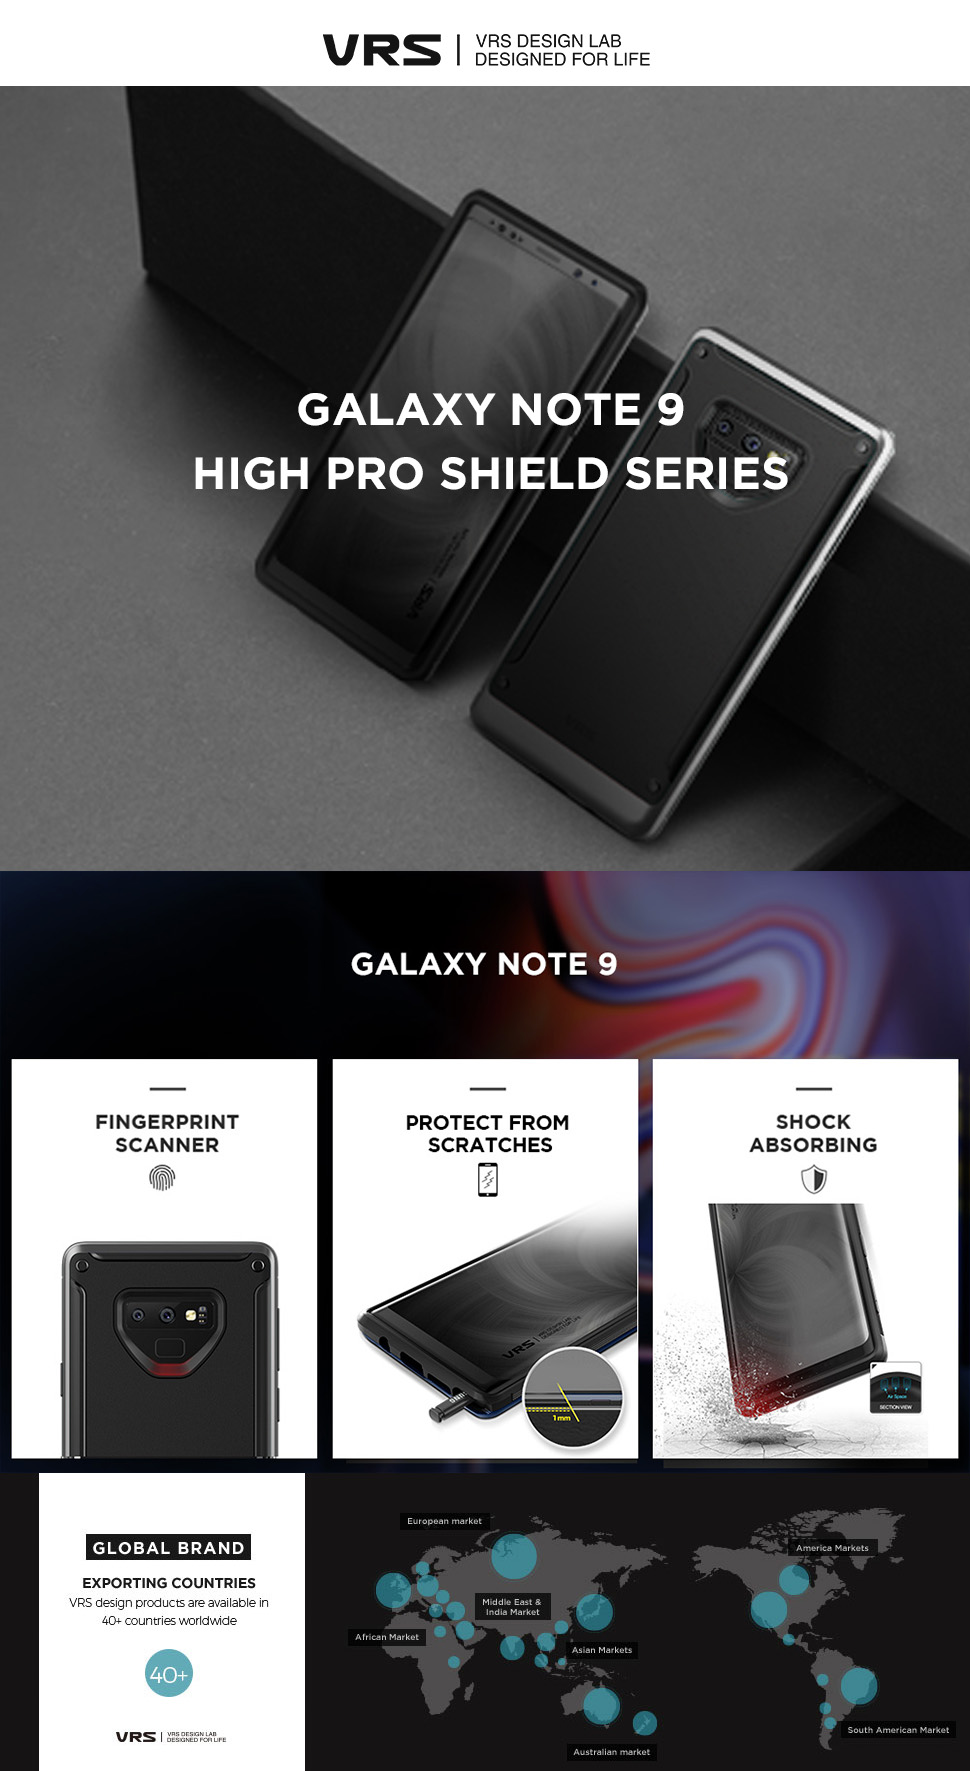 Best Protective Case for Galaxy Note 9 High Pro Shield Series From VRS Design